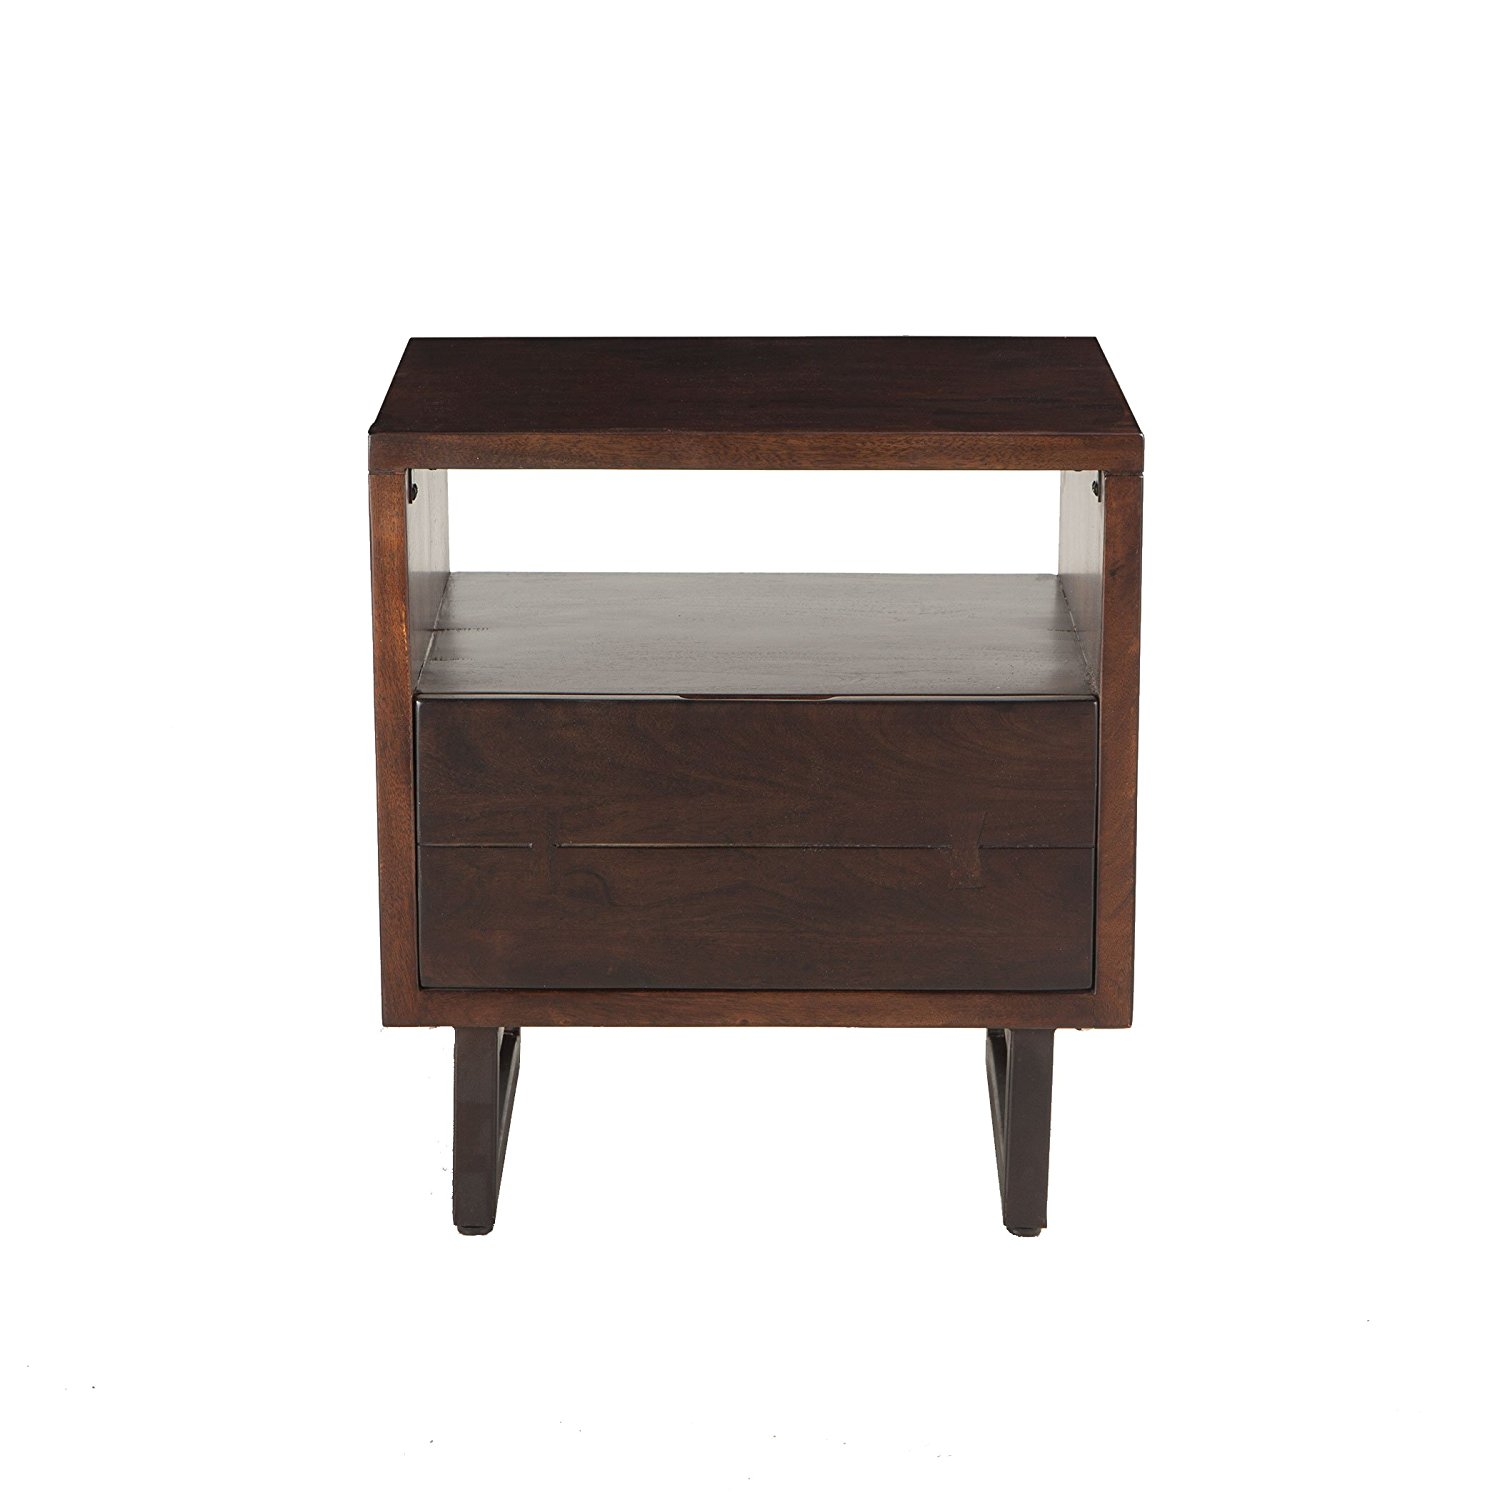 World Interiors Furniture Glenwood Acacia Night Chest, Dark Walnut Finish